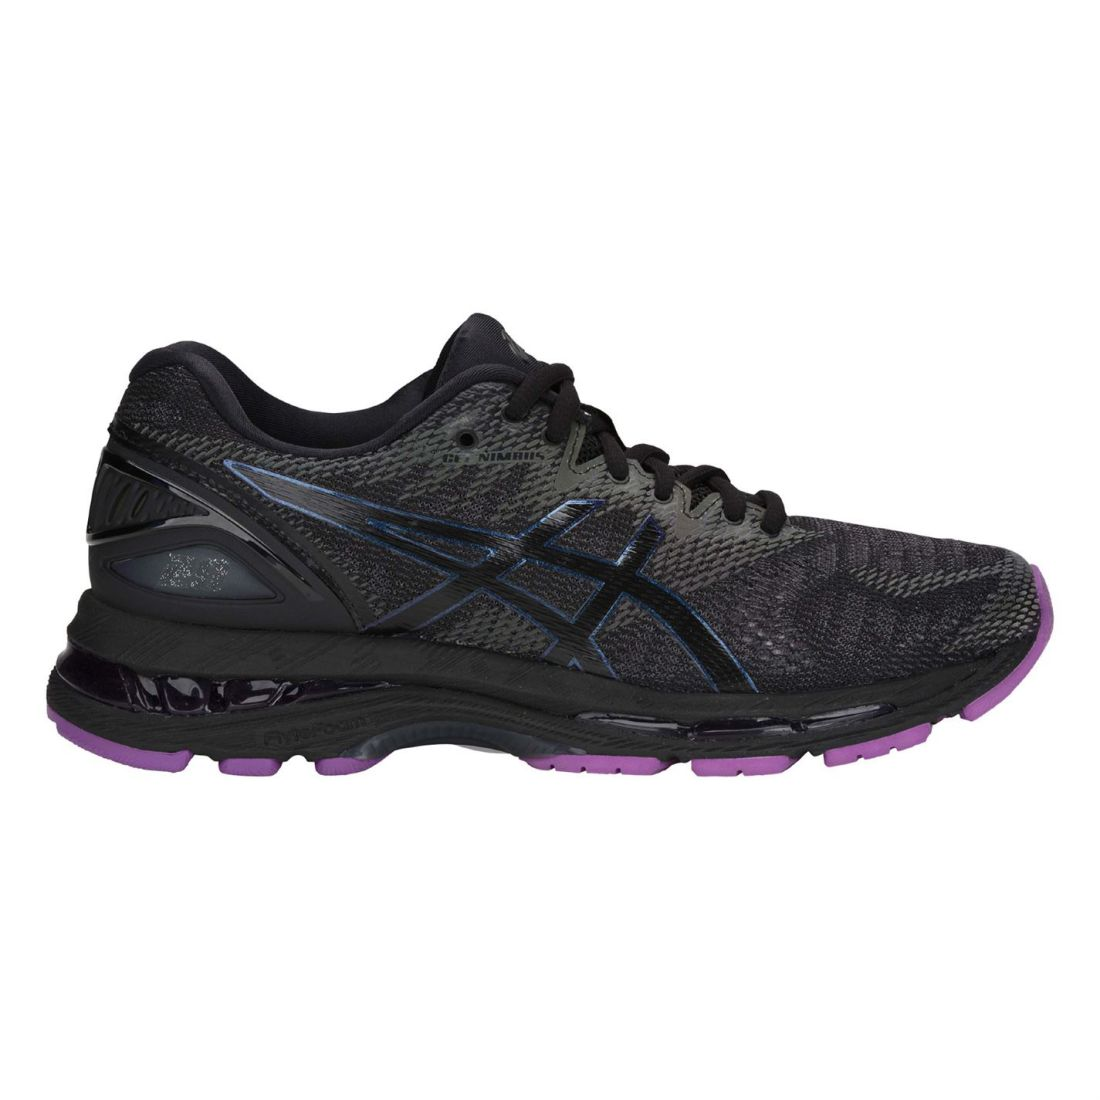 Asics Womens Nimbus 20 LS Road Running shoes